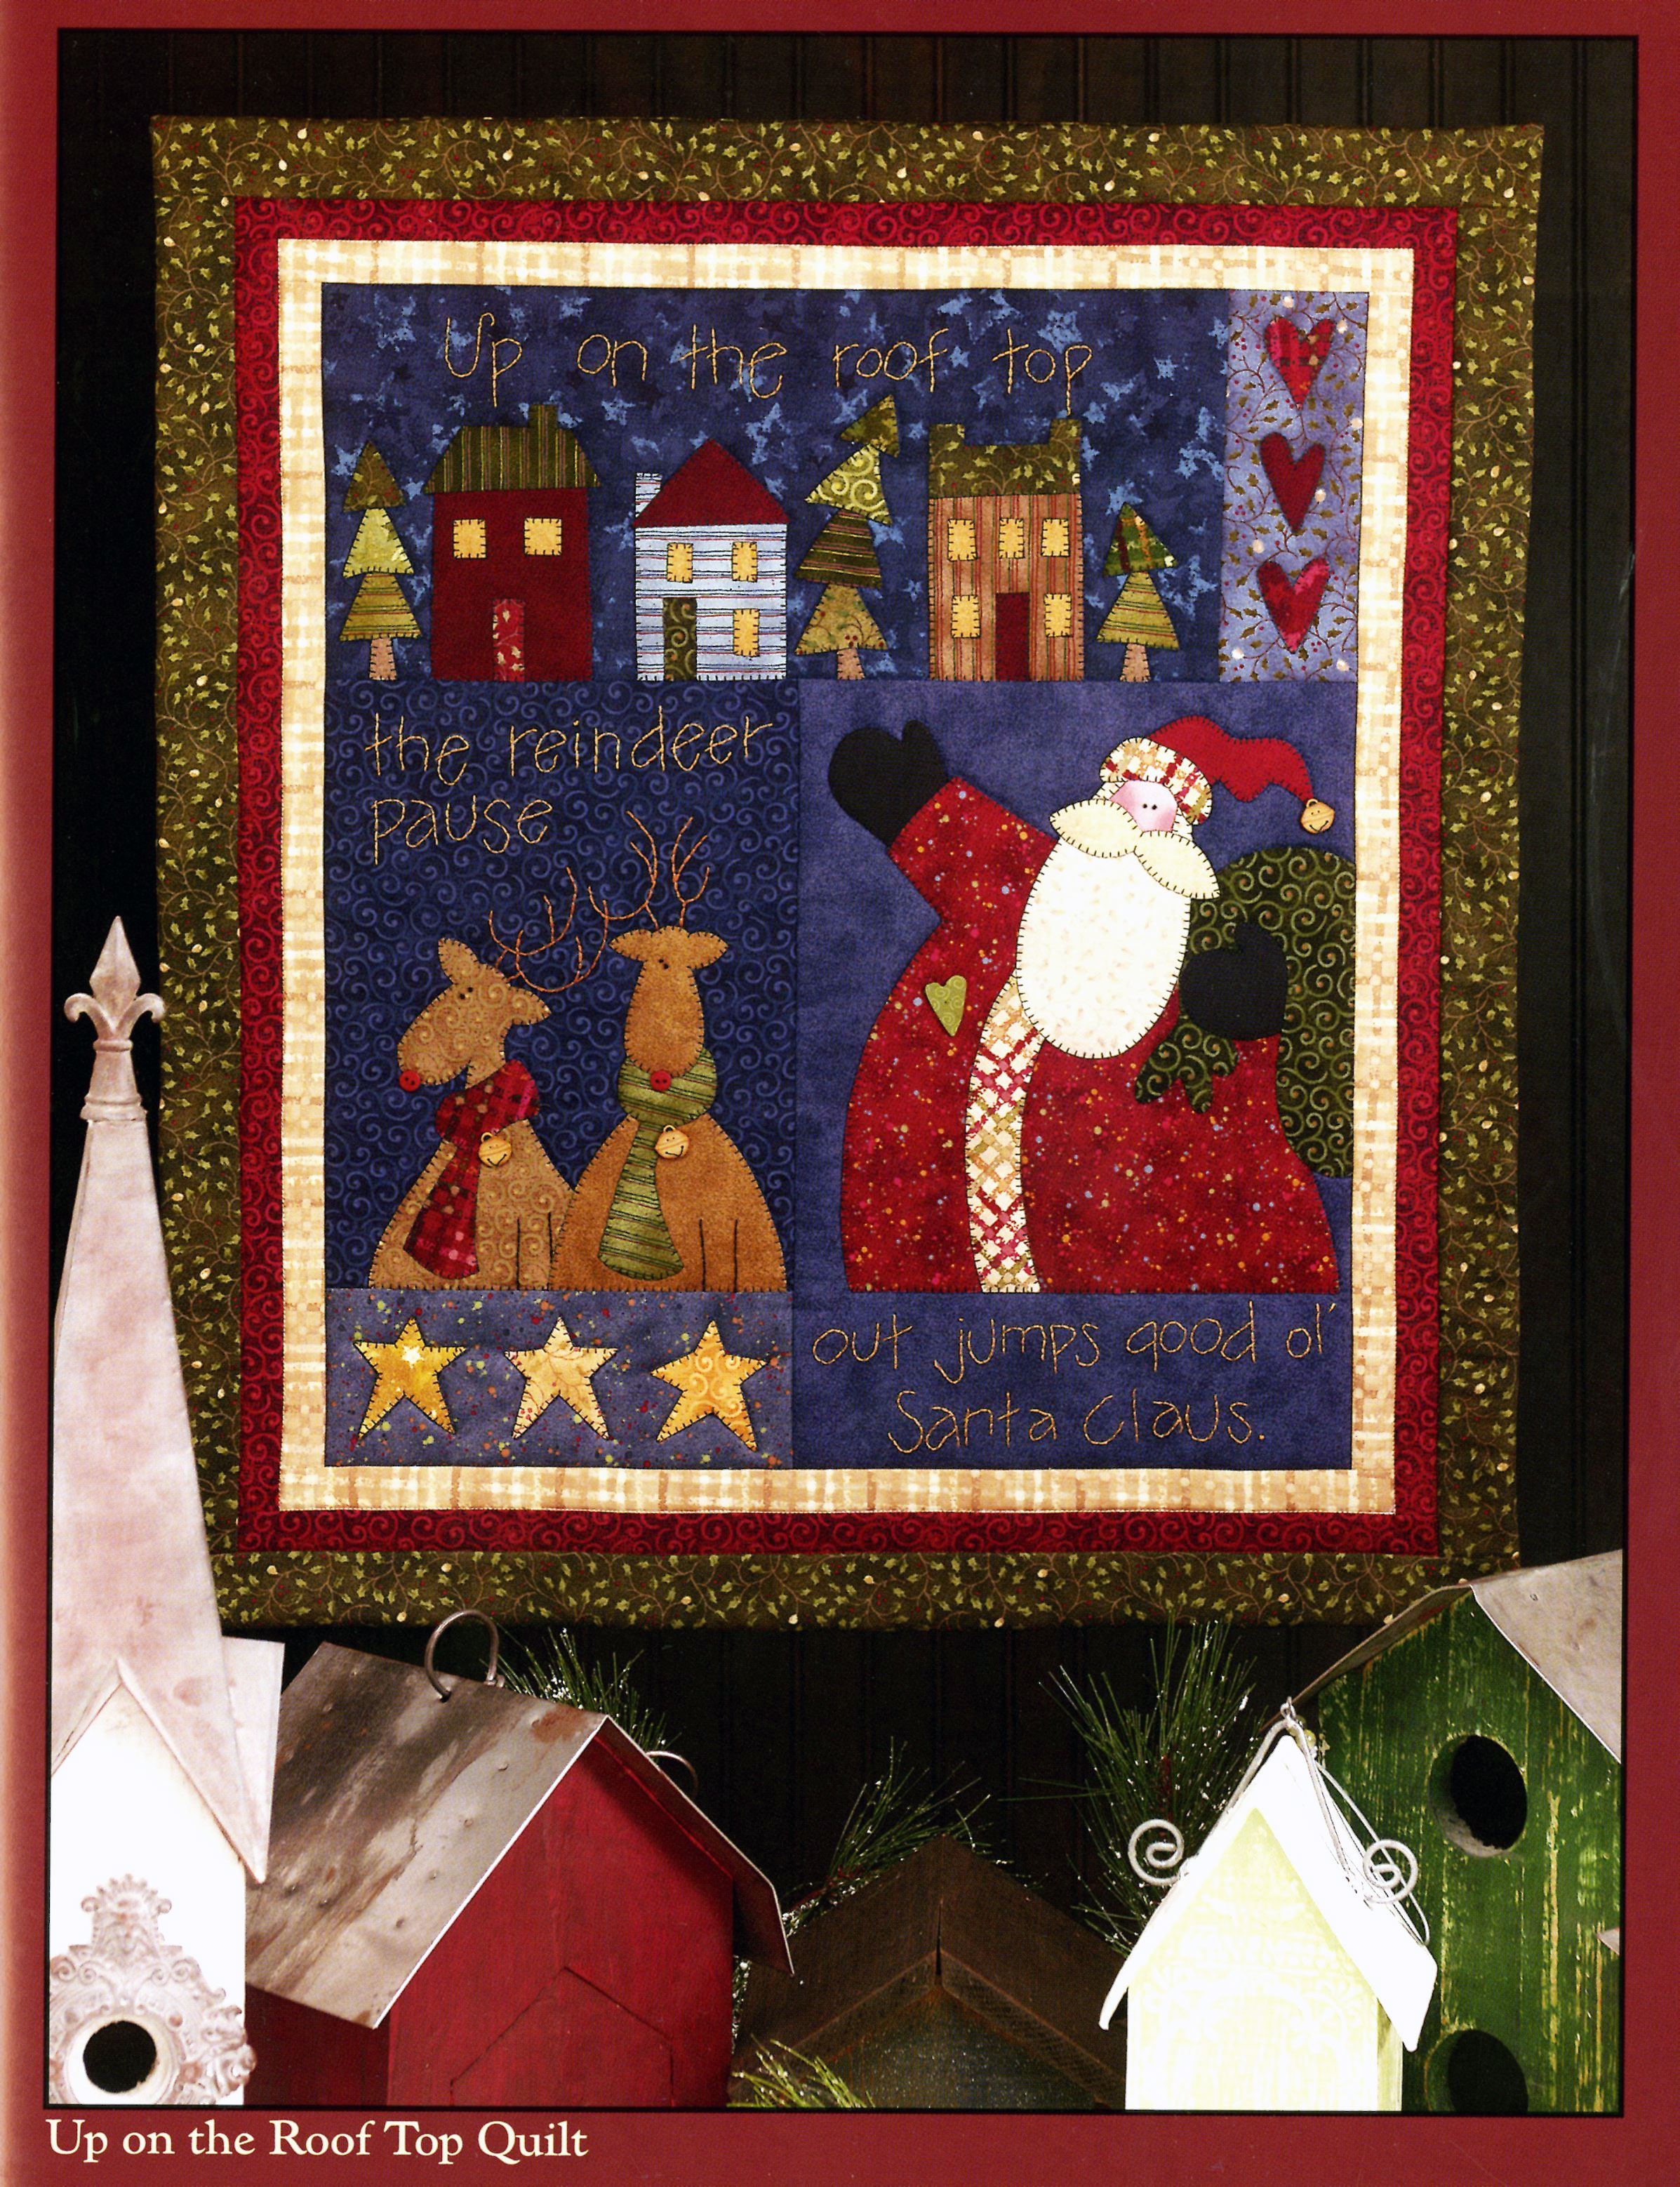 Happy-Holidays-to-You-sewing-pattern-book-Art-To-Heart-5